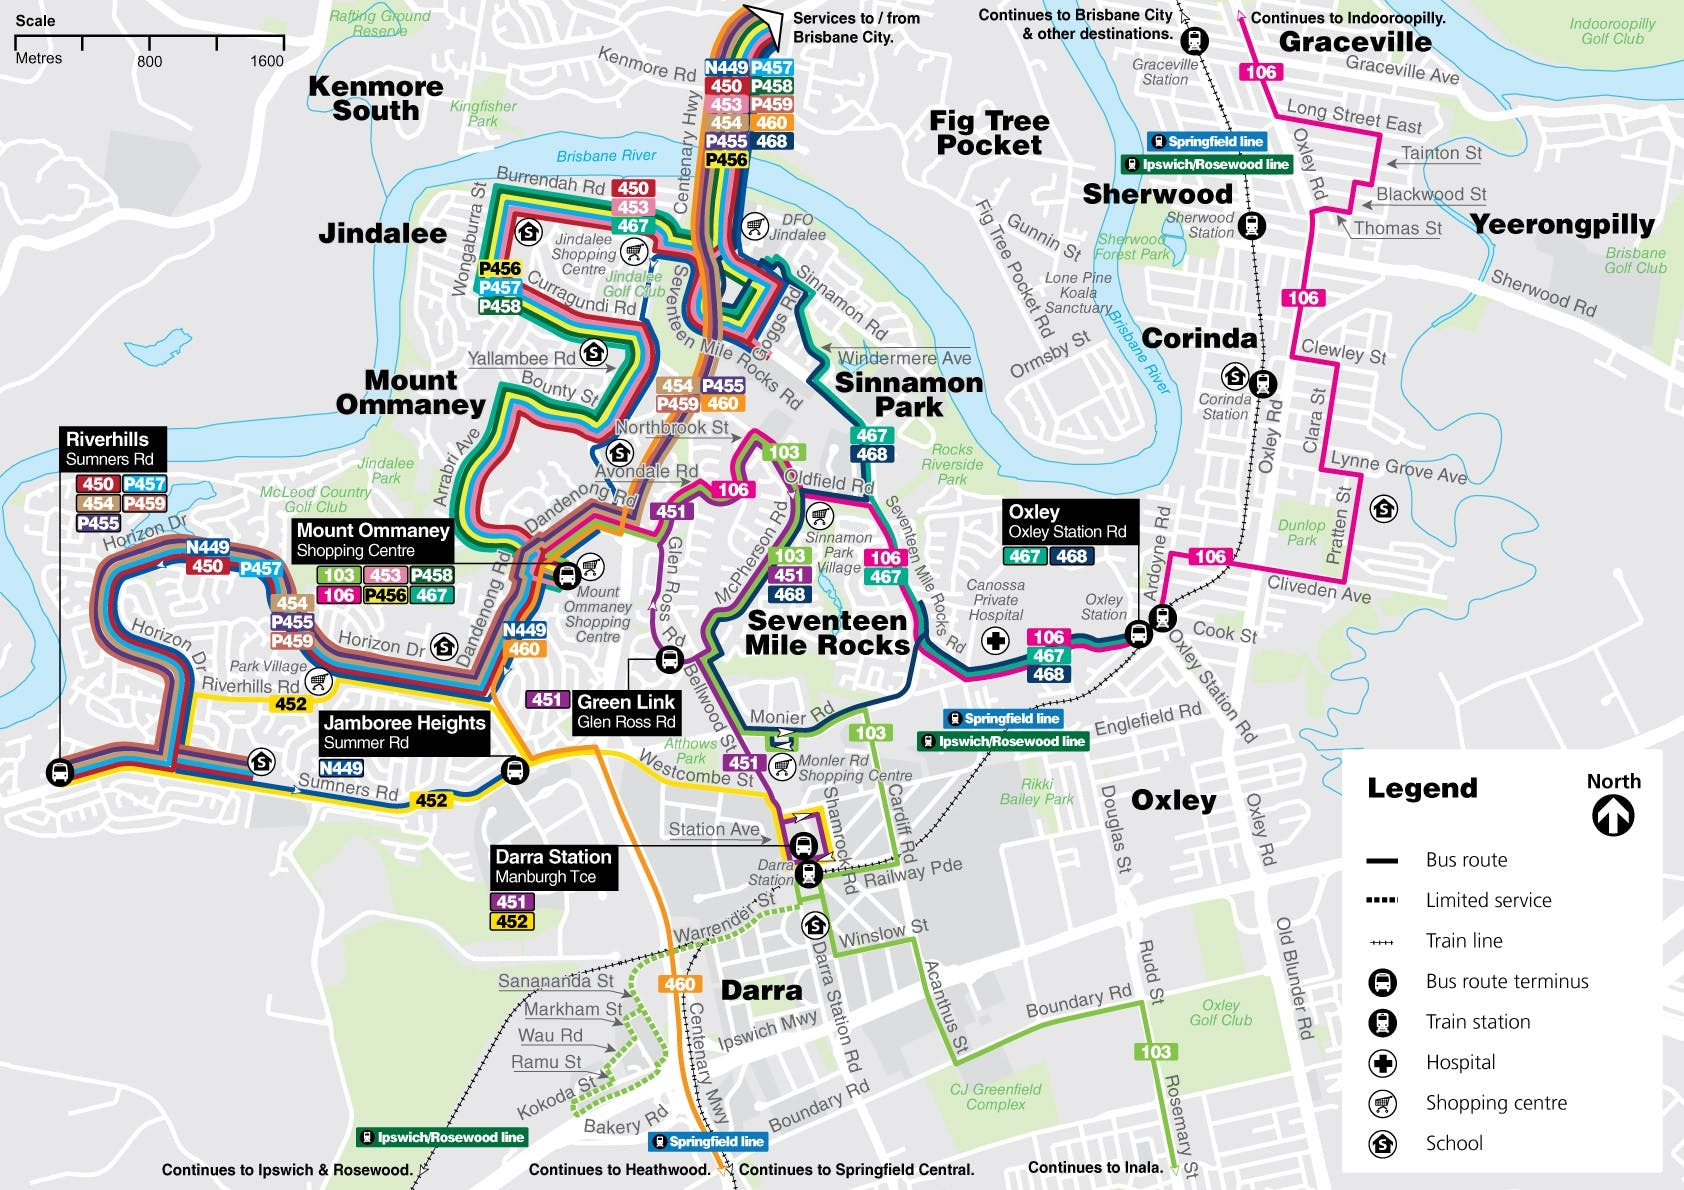 Centenary bus routes